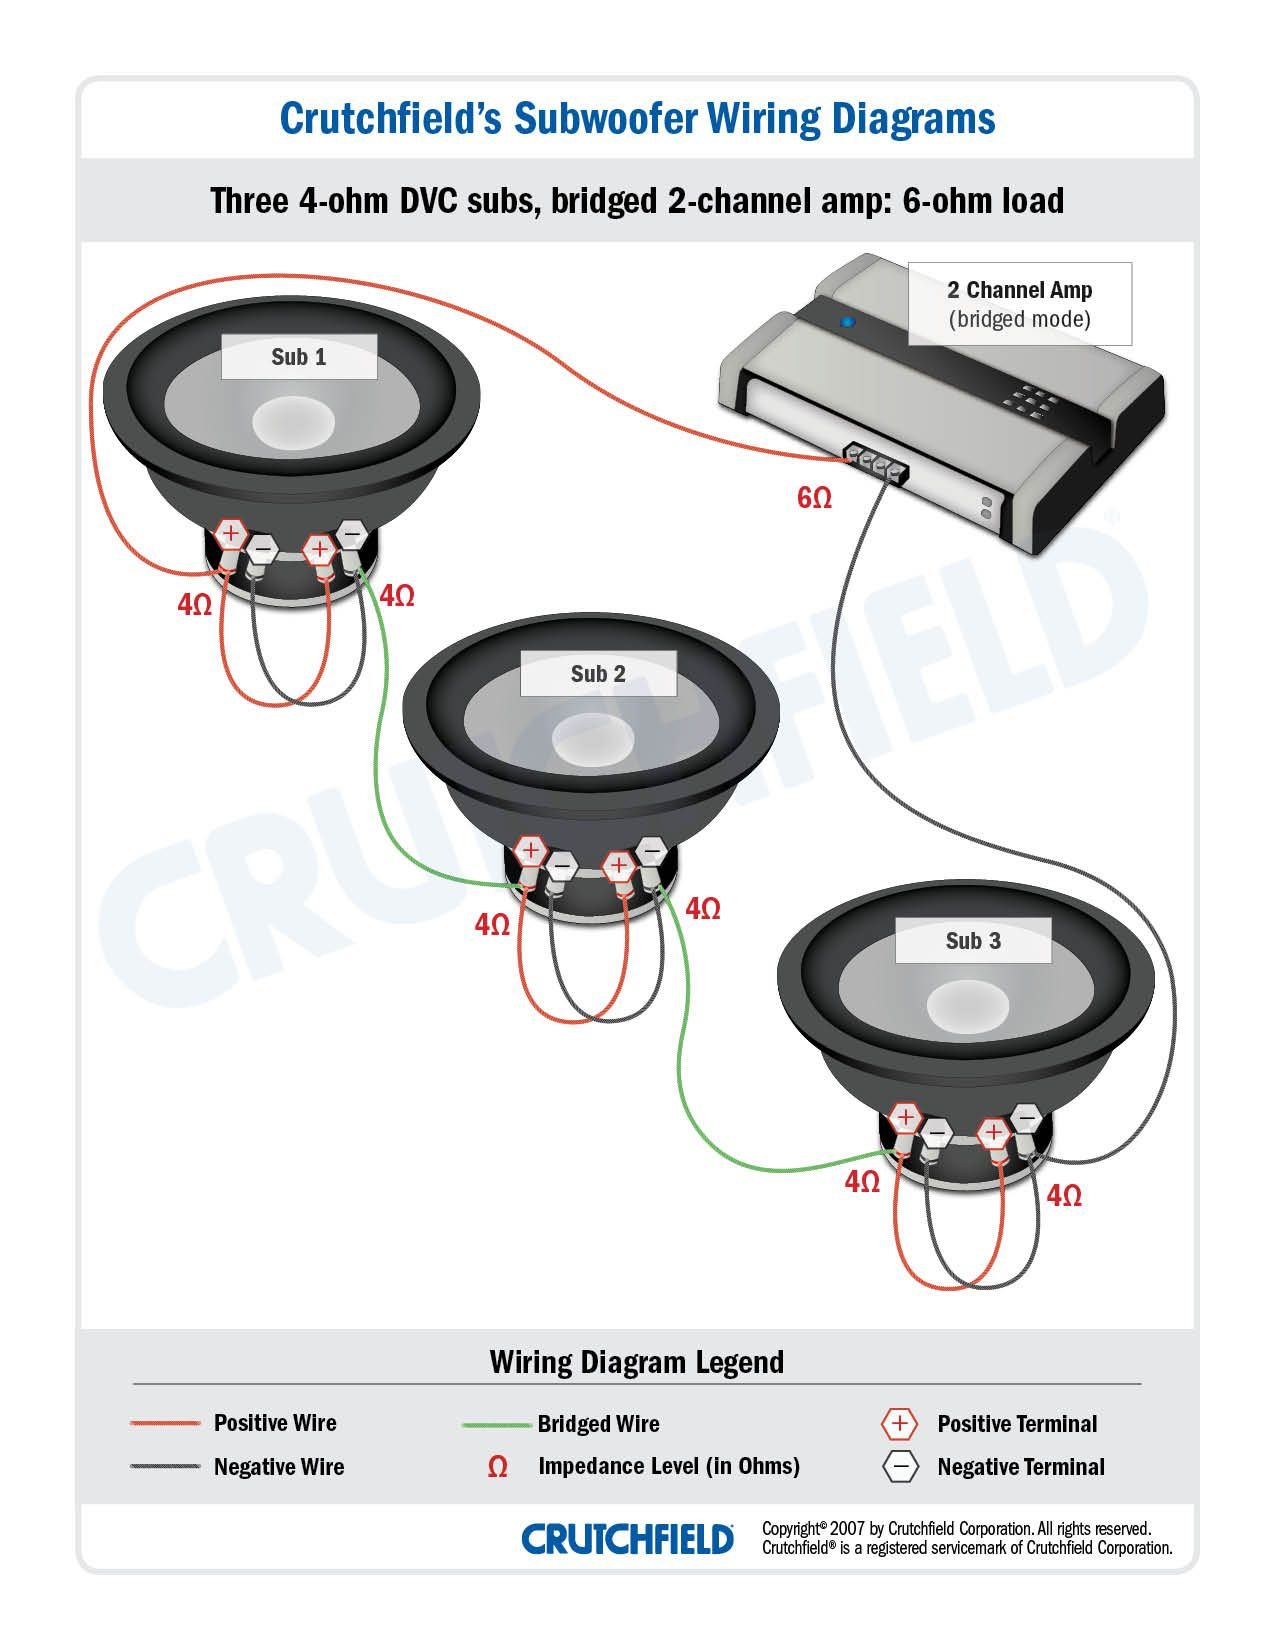 top 10 subwoofer wiring diagram free download 3 dvc 4 ohm 2 ch and rh pinterest com 1 ohm wiring diagram for subwoofers wiring diagram for subwoofer in car